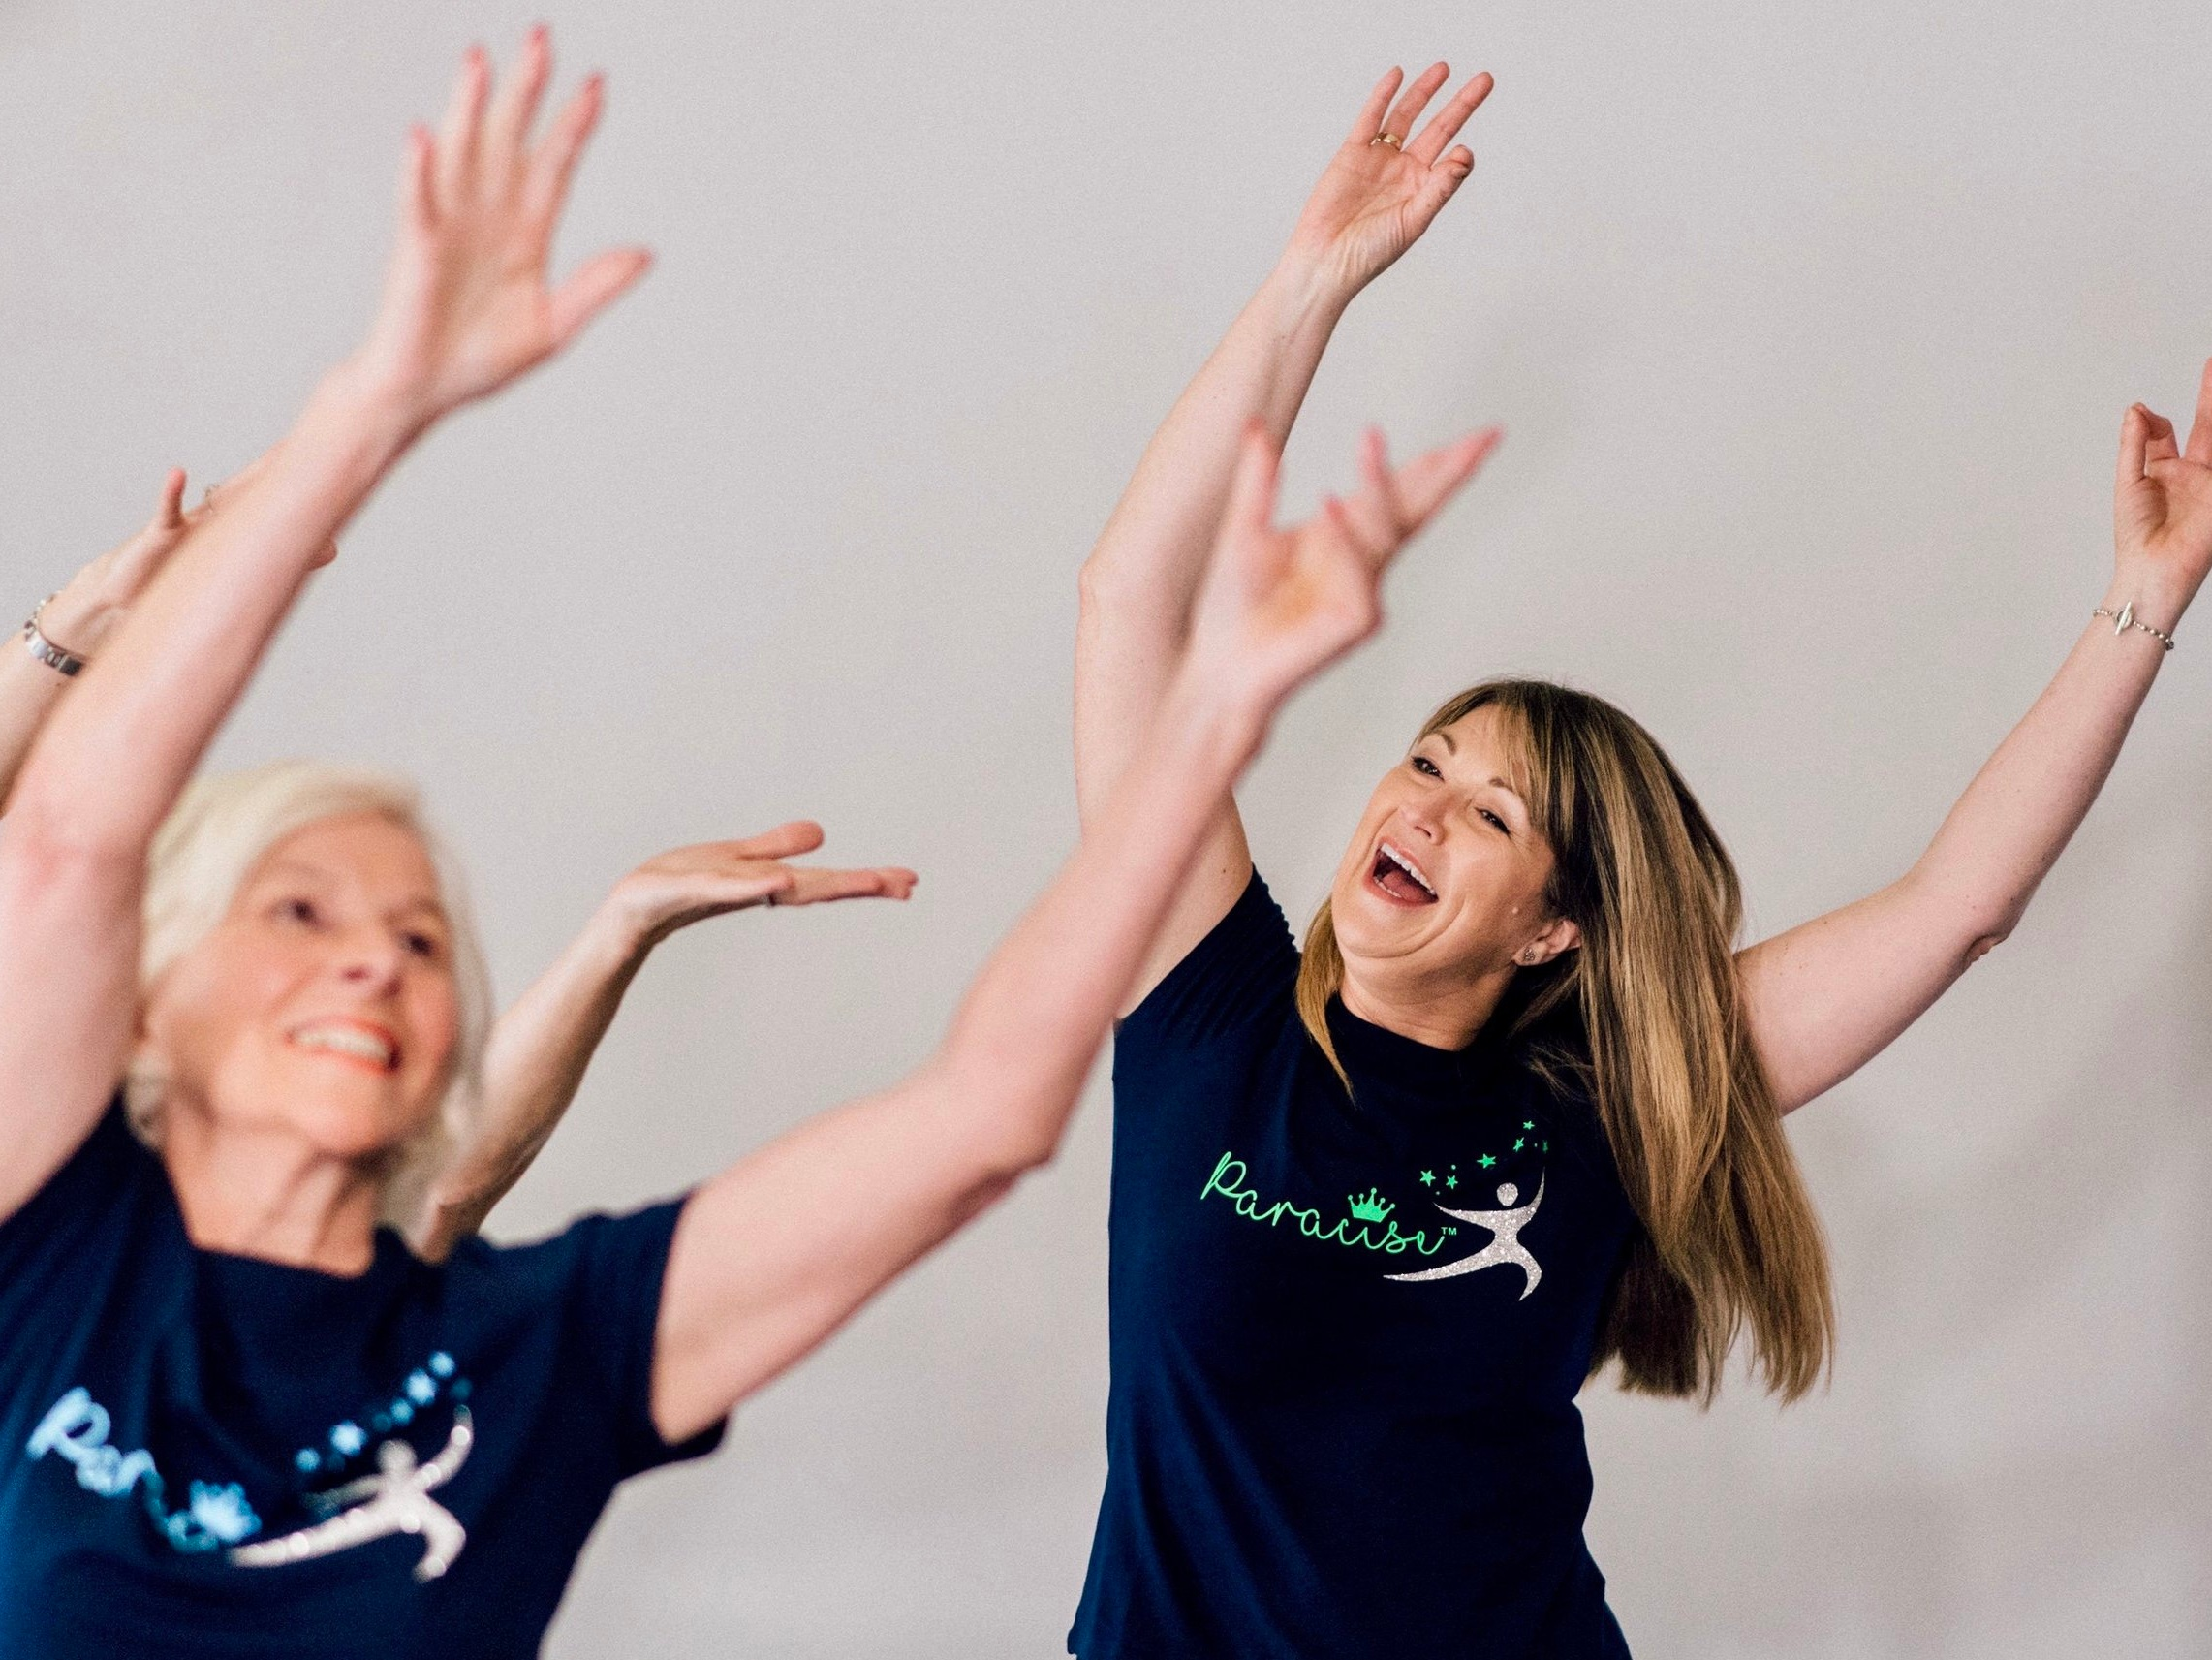 Paracise™ - Get moving, feel great!Paracise™ is gentle, fun and effective group exercise, with NO FLOOR WORK, and great music.